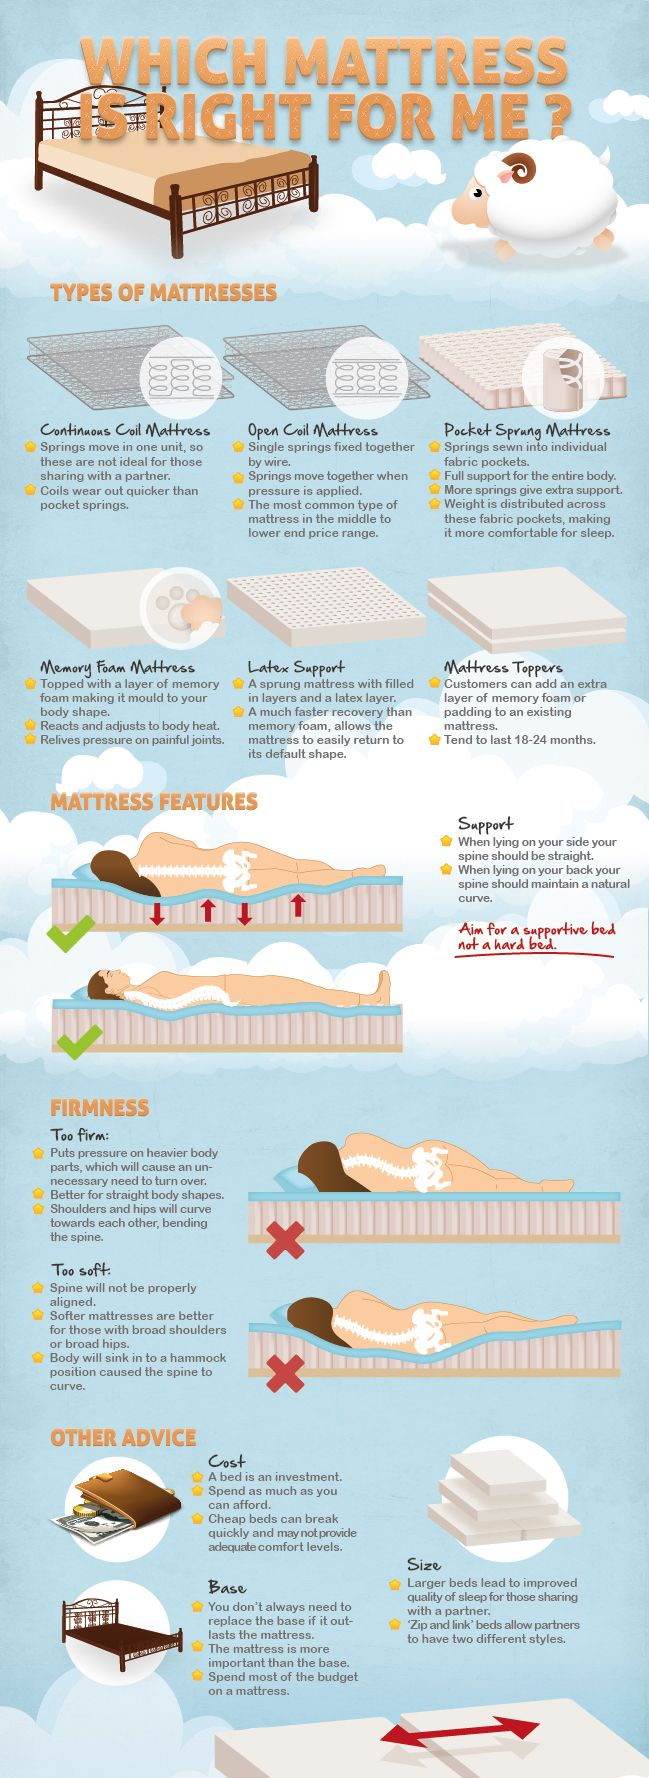 sleepers blog s cupid crop best mattress award acdc side winner center matress sleeper for cupids sleep reviews blogs